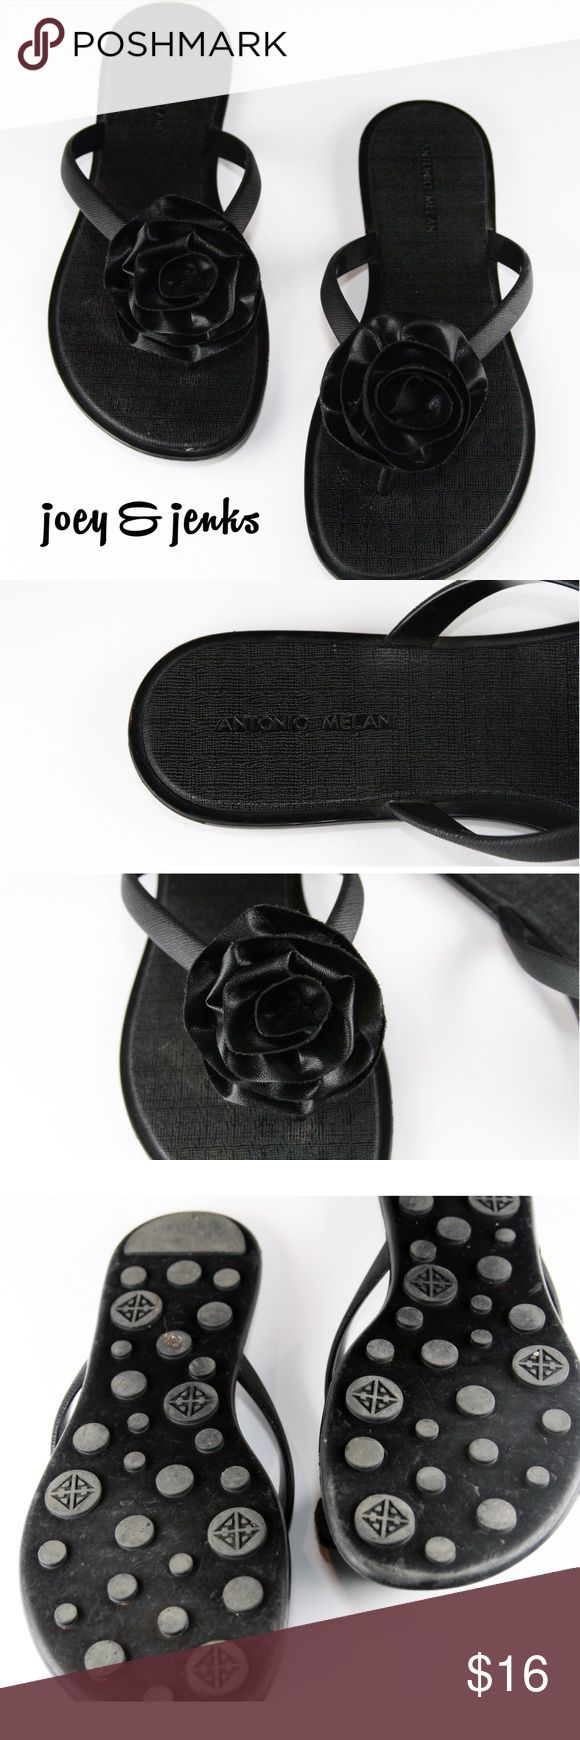 "⛱SALE⛱ Antonio Melani Black Sandals Ready for the pool!  Excellent condition.  Show little if any signs of wear. These sandals are rubber so they can go to the pool but can also go to dinner. Rose is also made of rubber. There is no box. ● Size 7 1/2 Medium. Length is 10"" from end to end. ● Made of rubber. ● Bundle 2 or more items for 15% off. Free shipping for orders over $100. Smoke-free home and fast shipper! Antonio Melani Shoes Sandals"